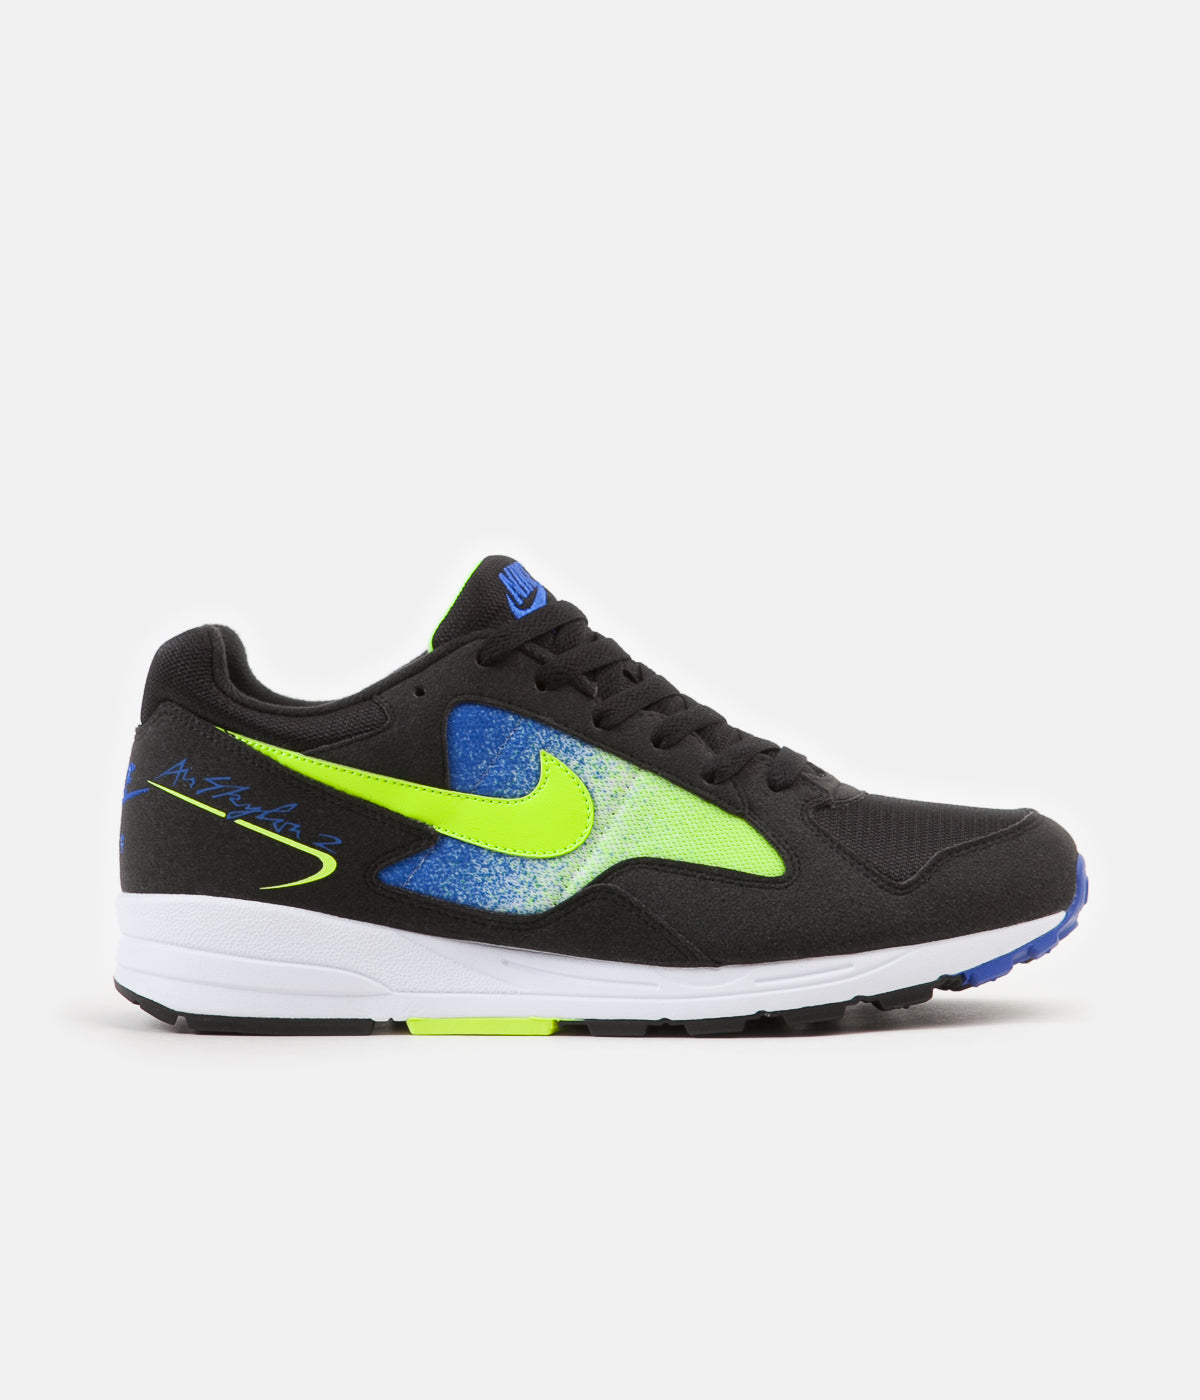 detailed look 0e206 0e272 ... Nike Air Skylon II Shoes - Black / Volt - Racer Blue - White ...